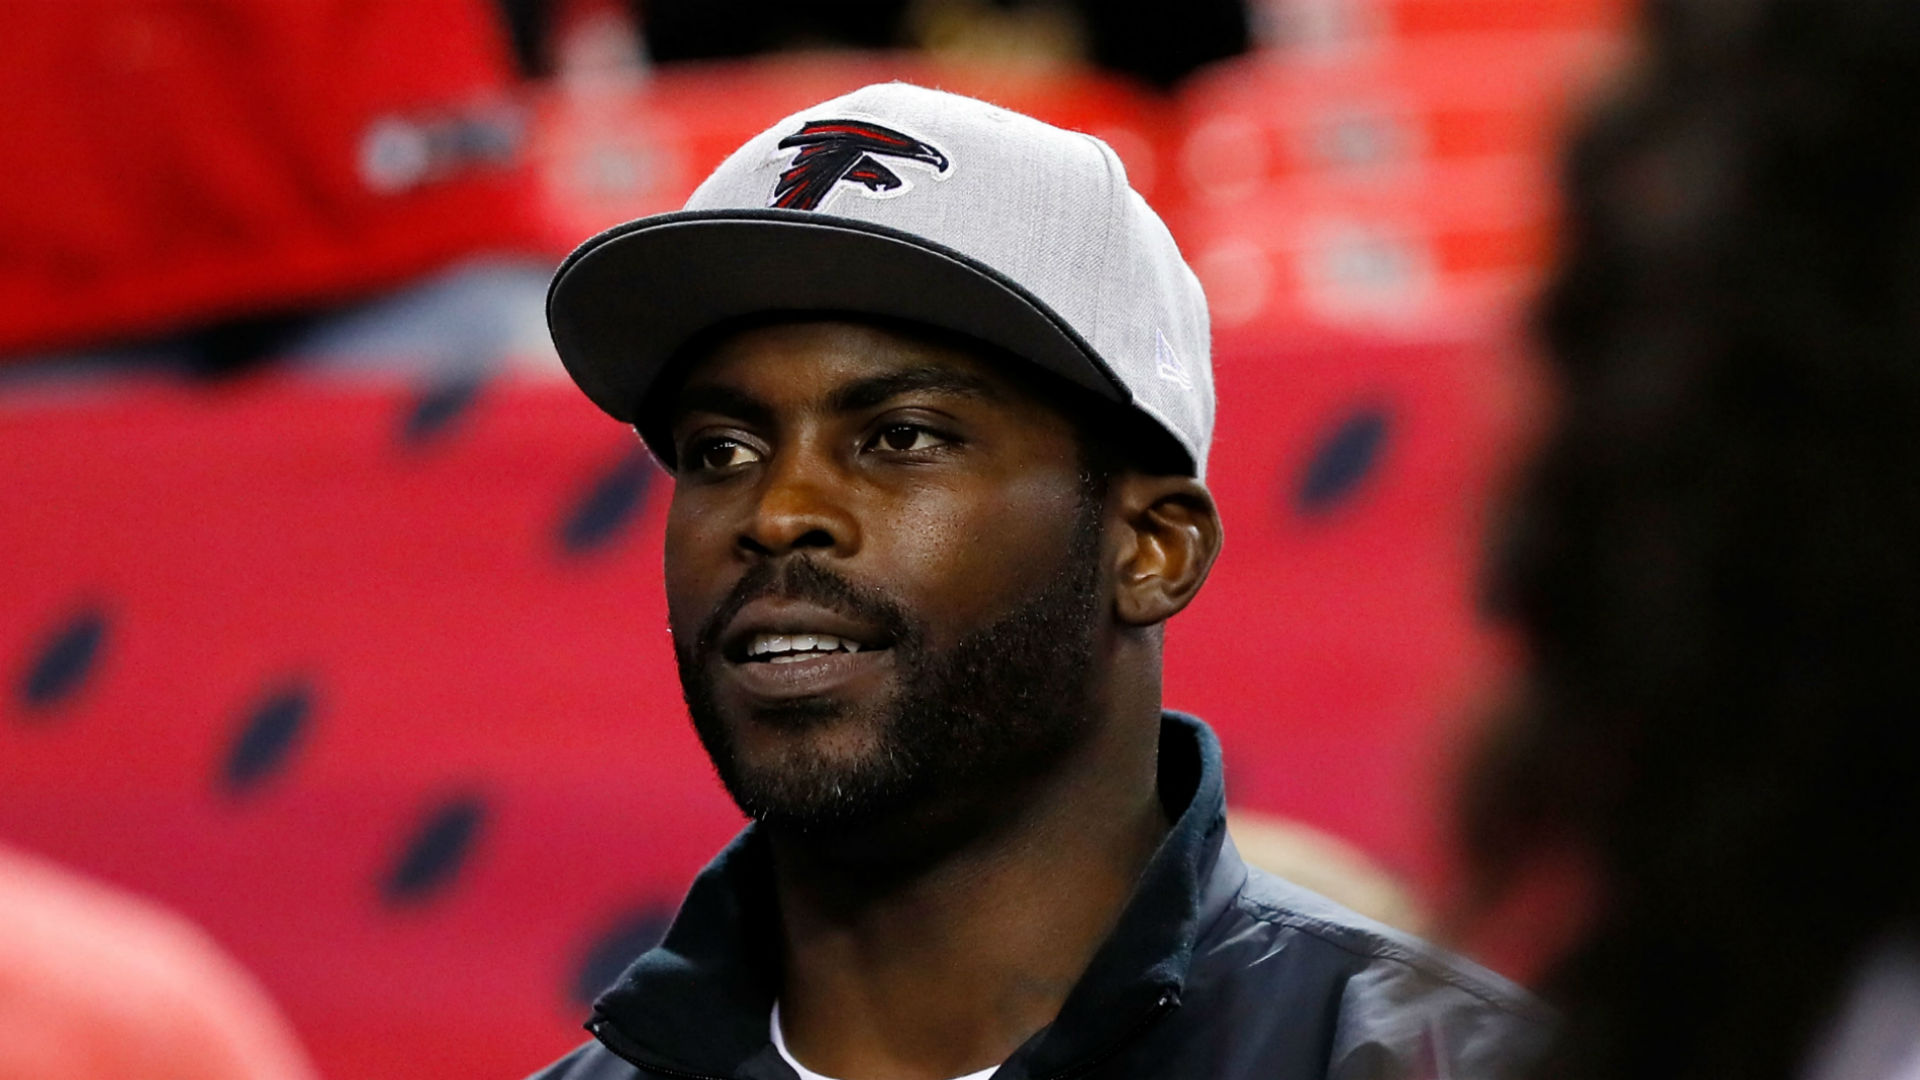 Michael Vick makes final payment on debt from bankruptcy deal